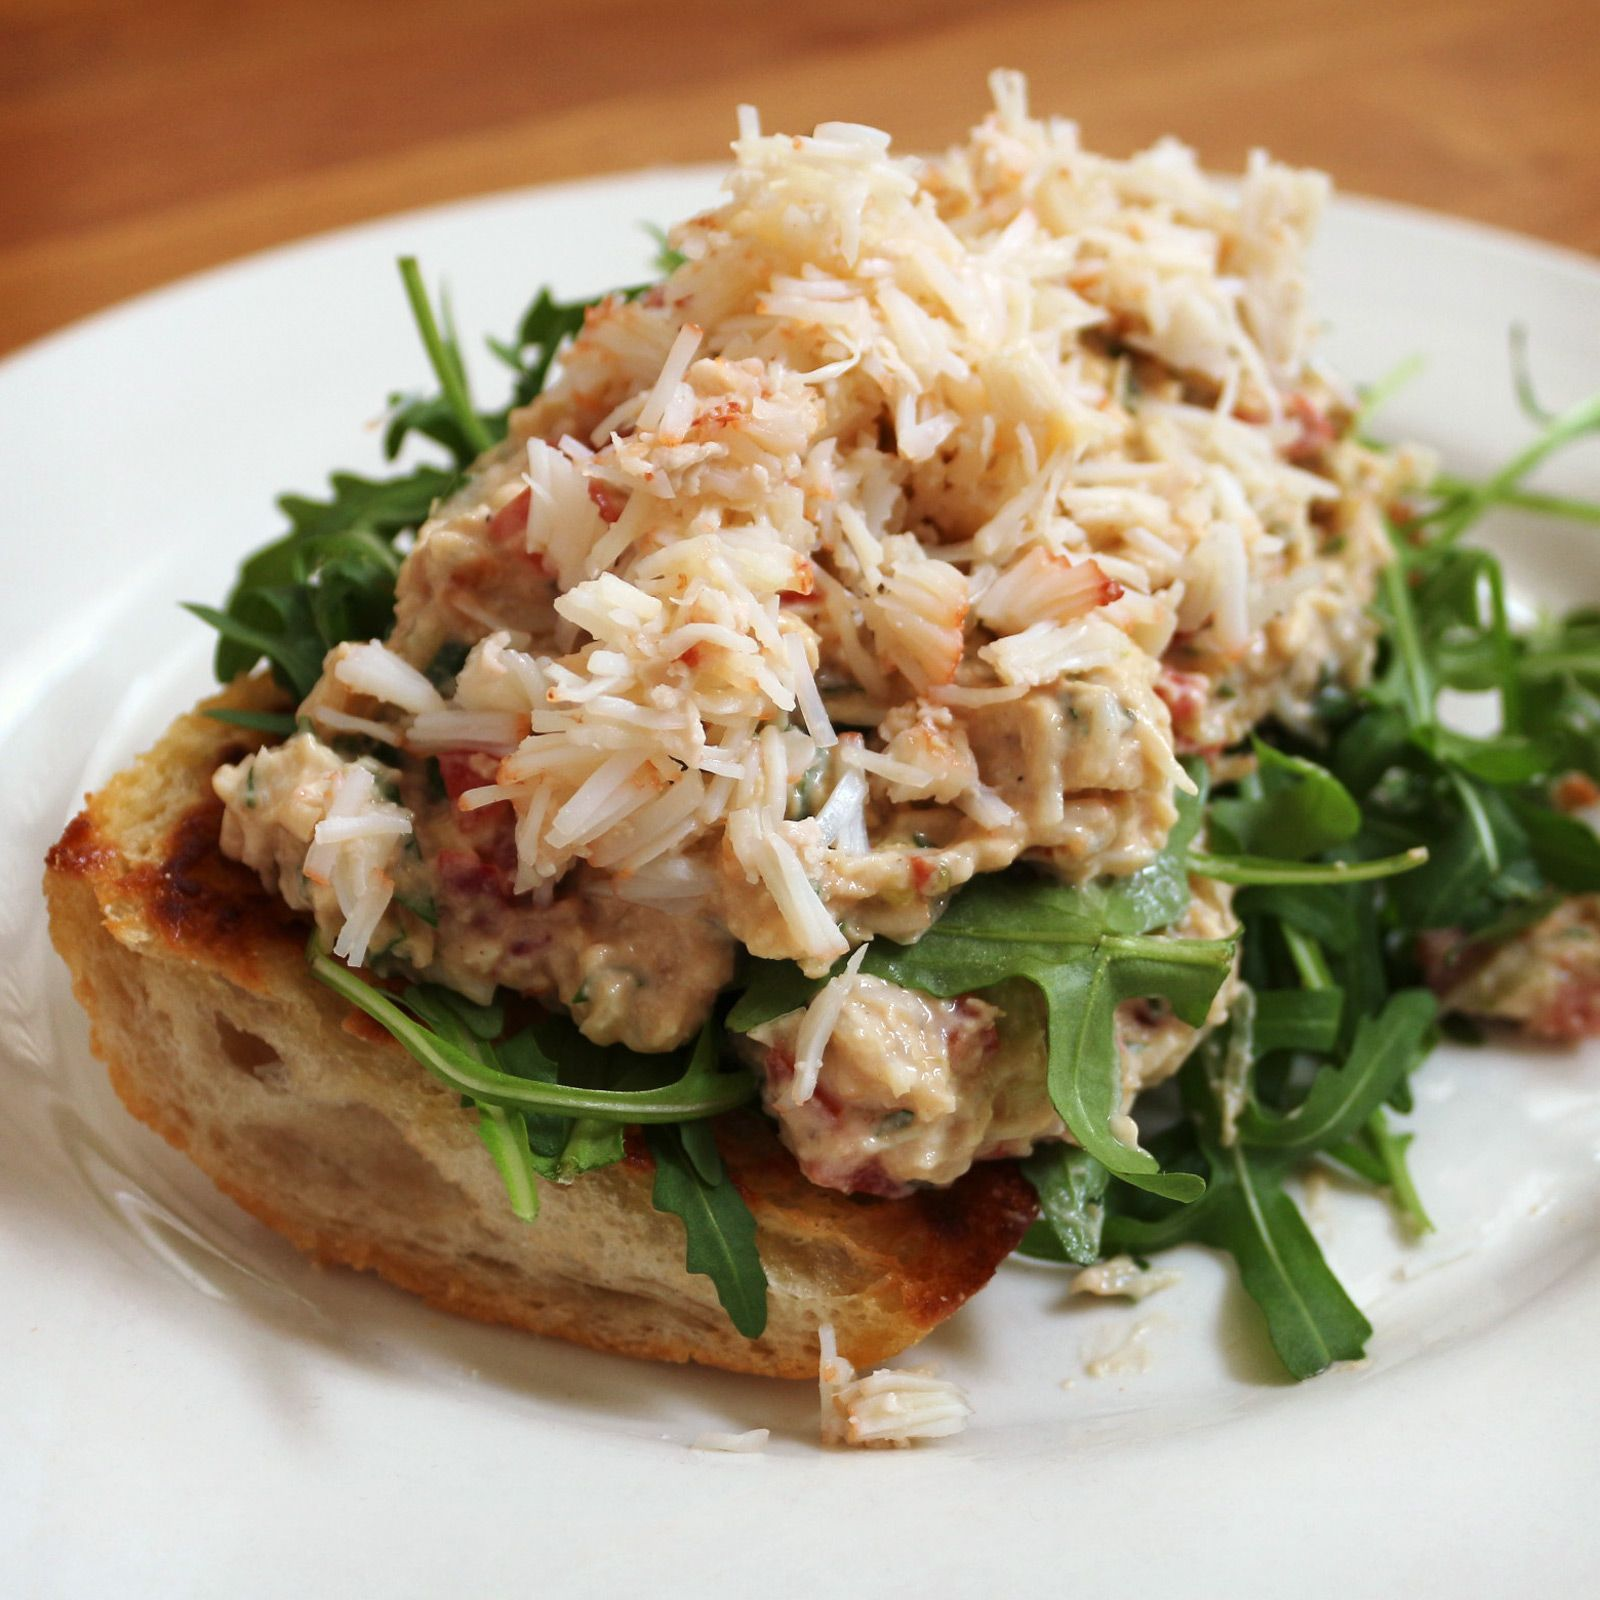 Crab sandwich | Food: Sandwiches | Pinterest